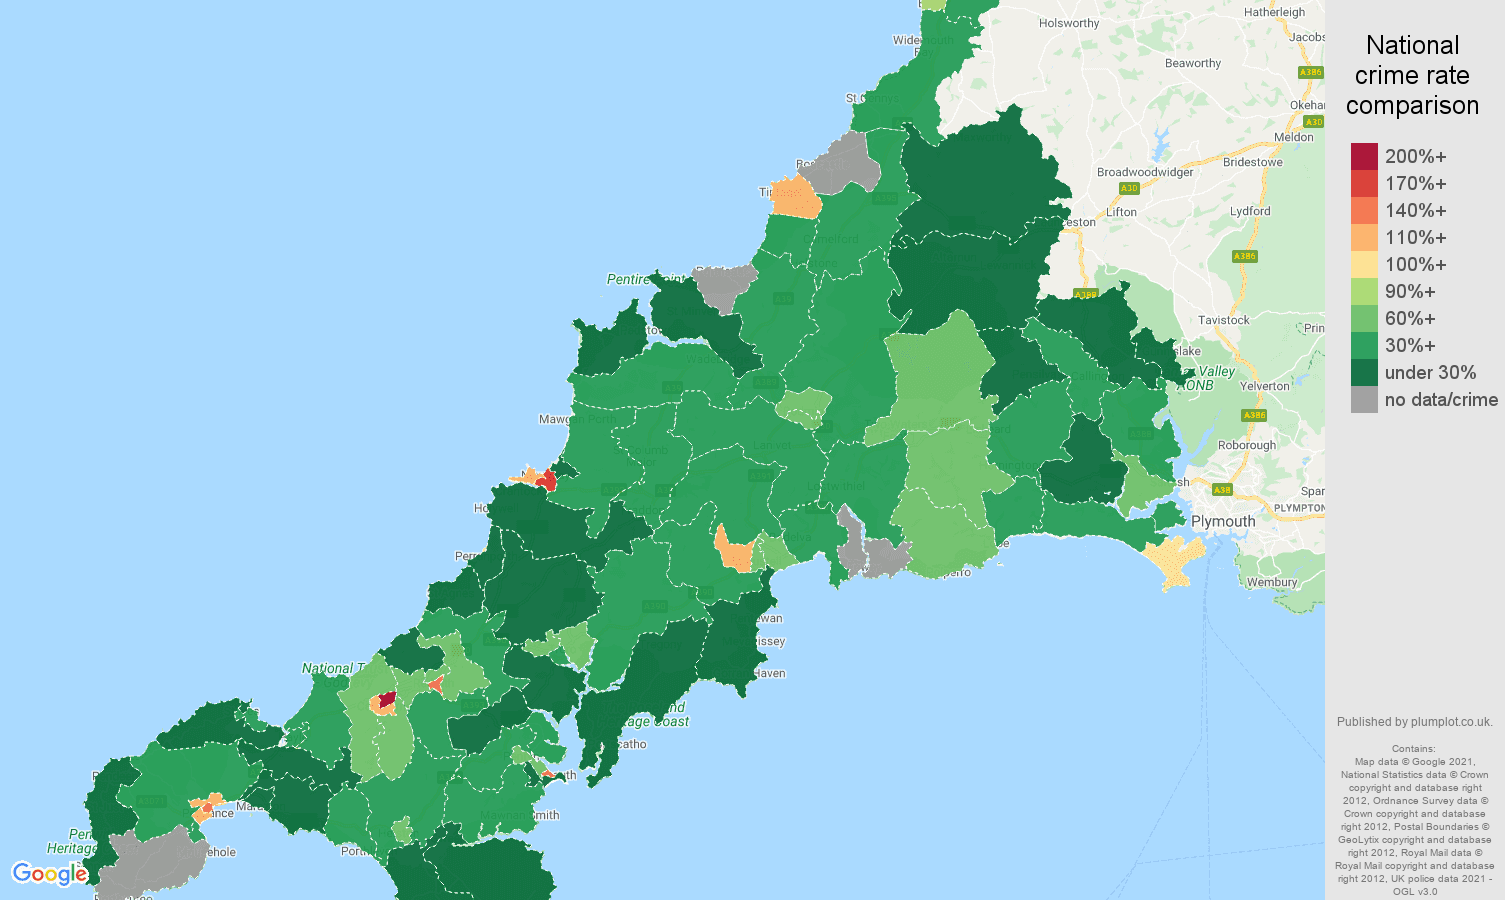 Cornwall drugs crime rate comparison map